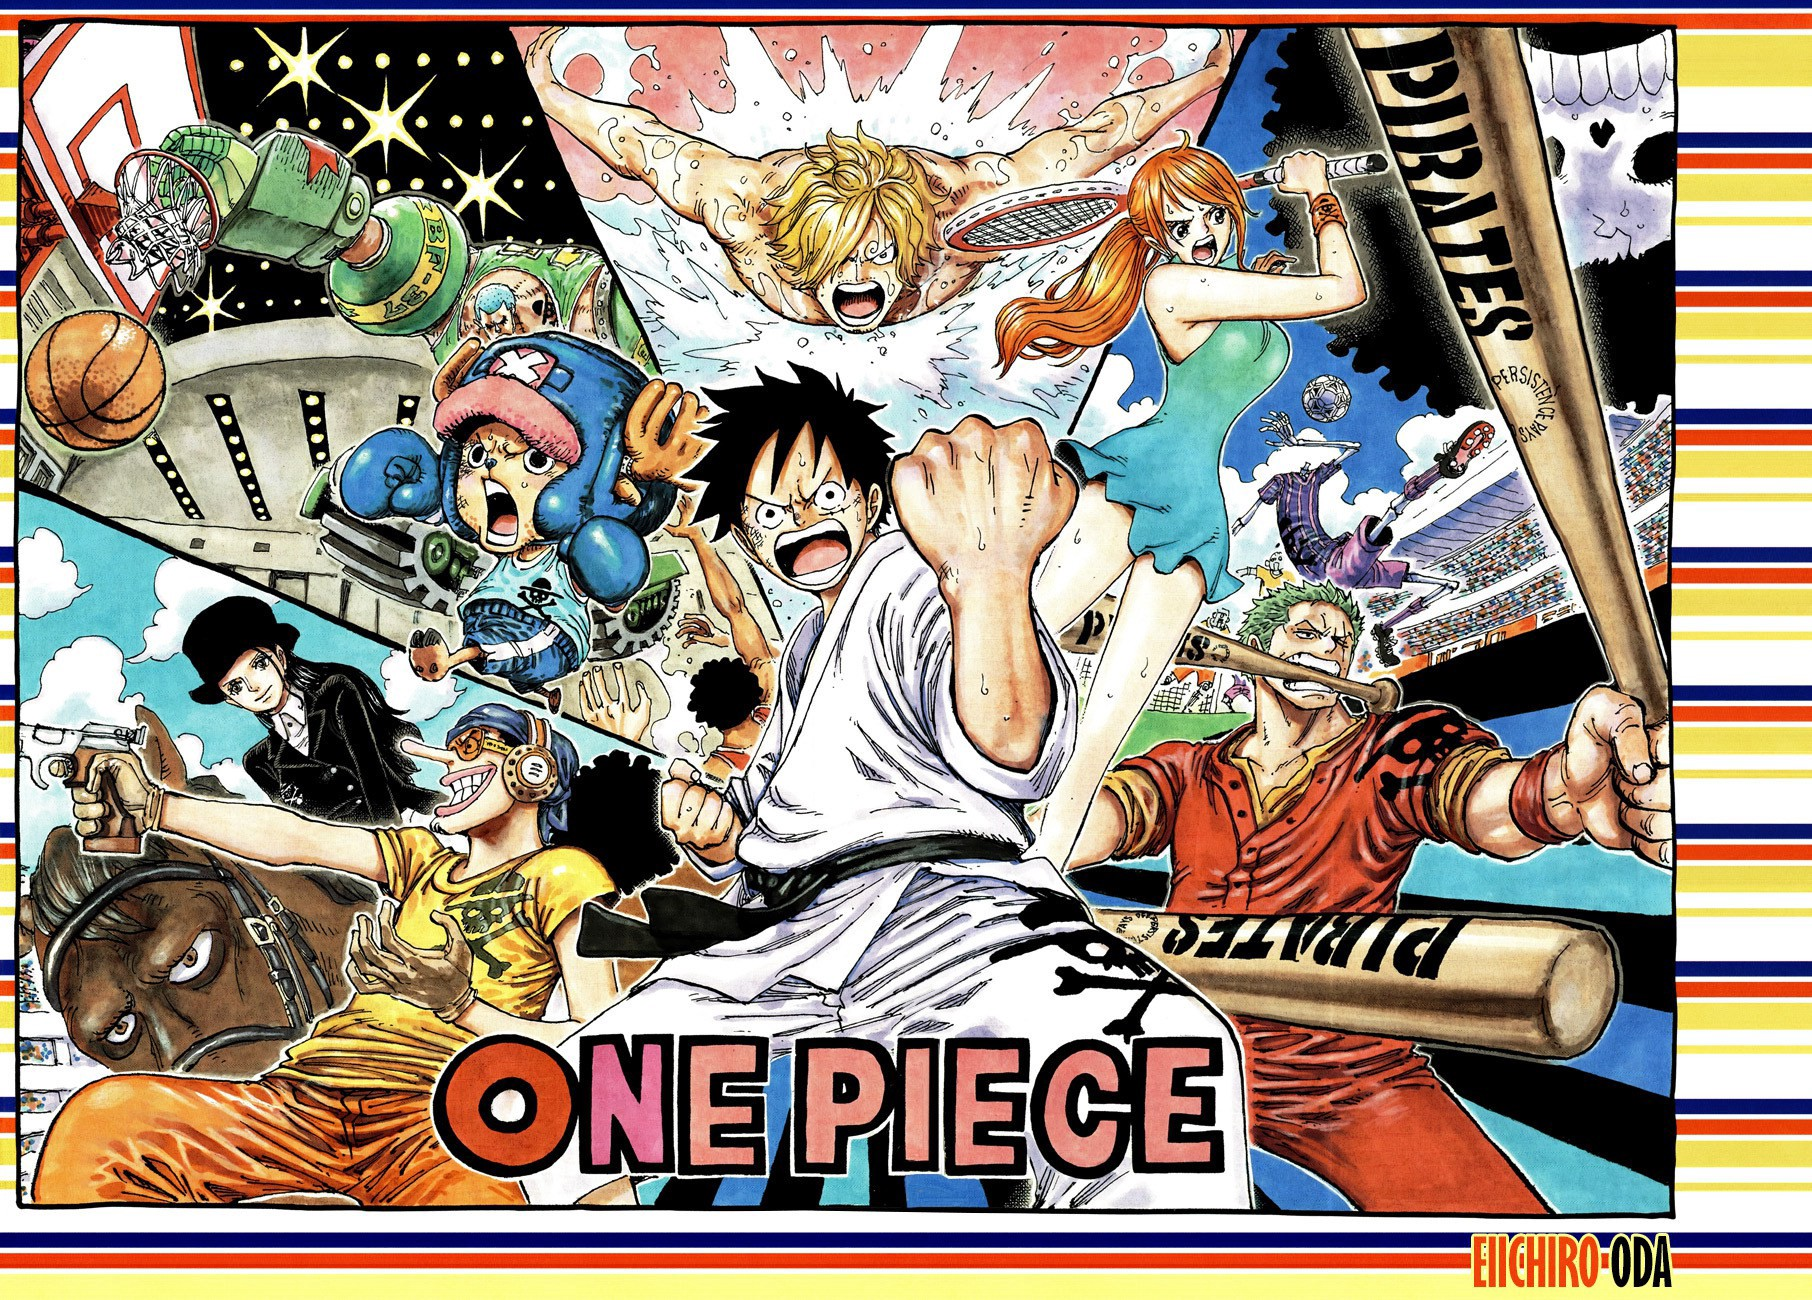 One Piece Story Arcs: How Much Of The Story Is Left?